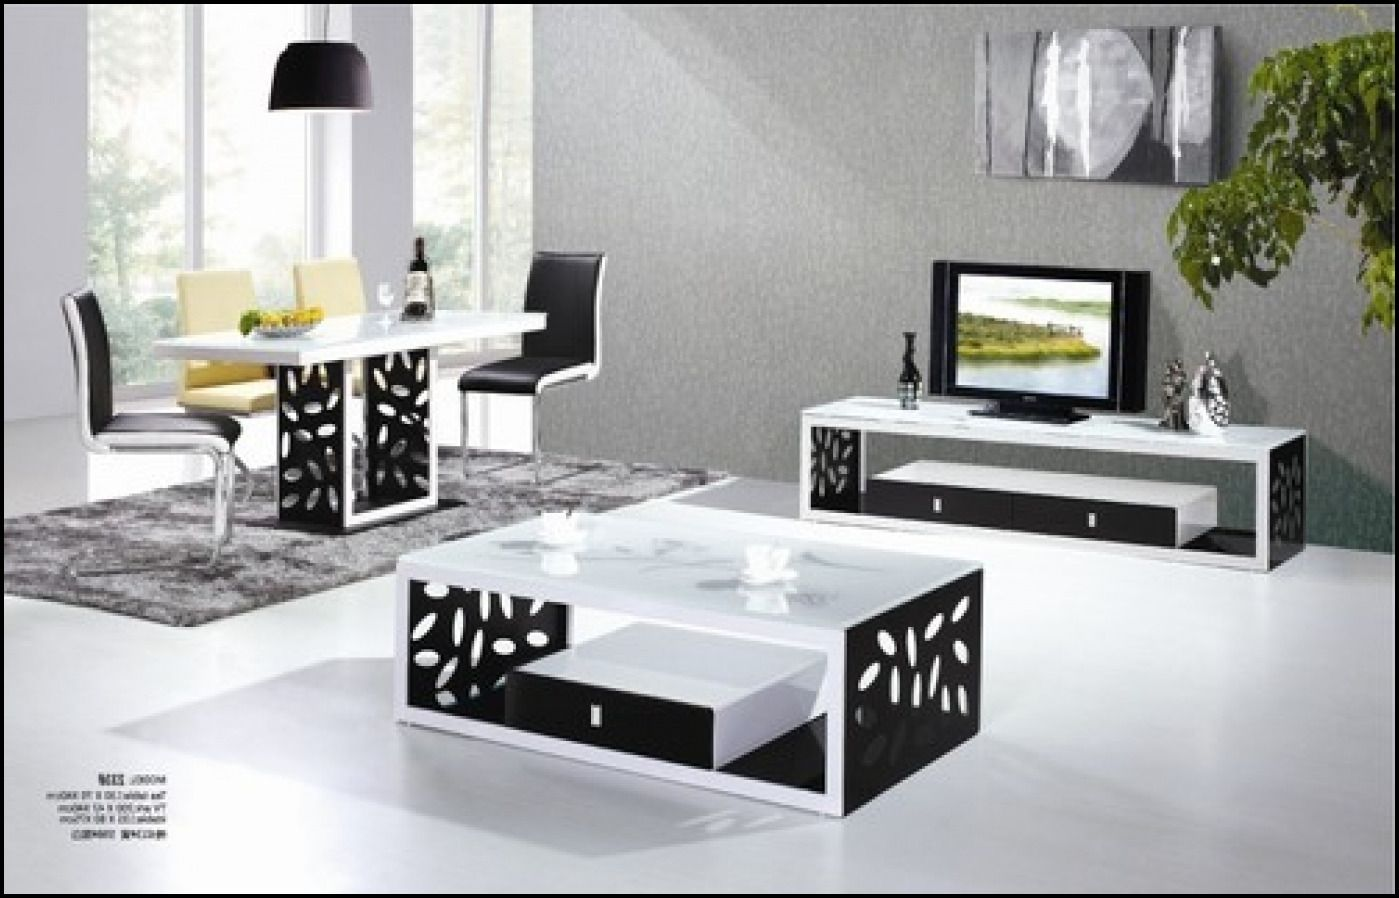 Tv Stand And Coffee Table Set   Tv Stand And Coffee Table Set,black Tv